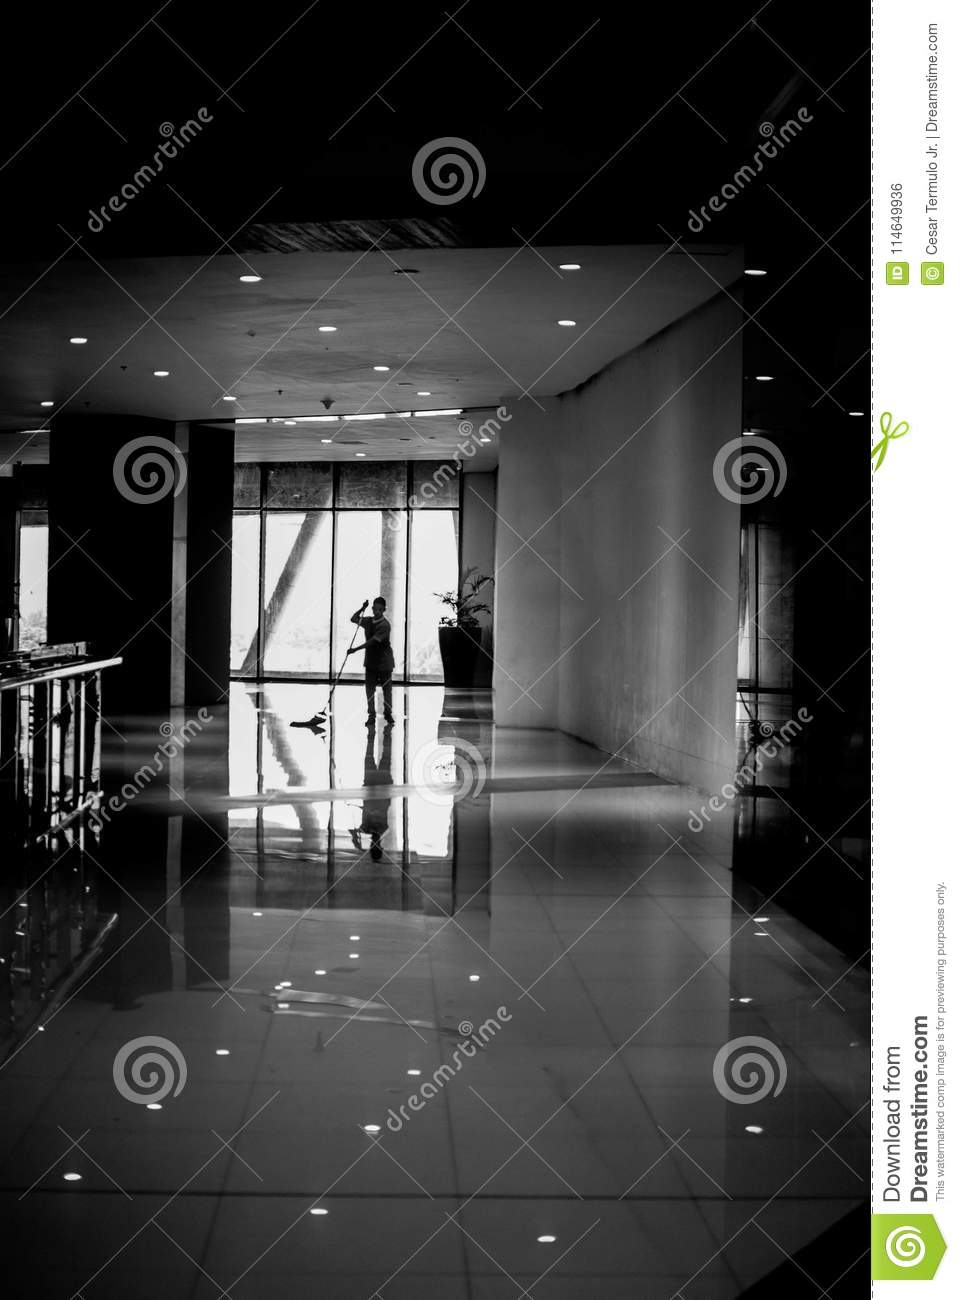 Photo of a working person cleaning the floor of a mall in black and white for commercial purposes